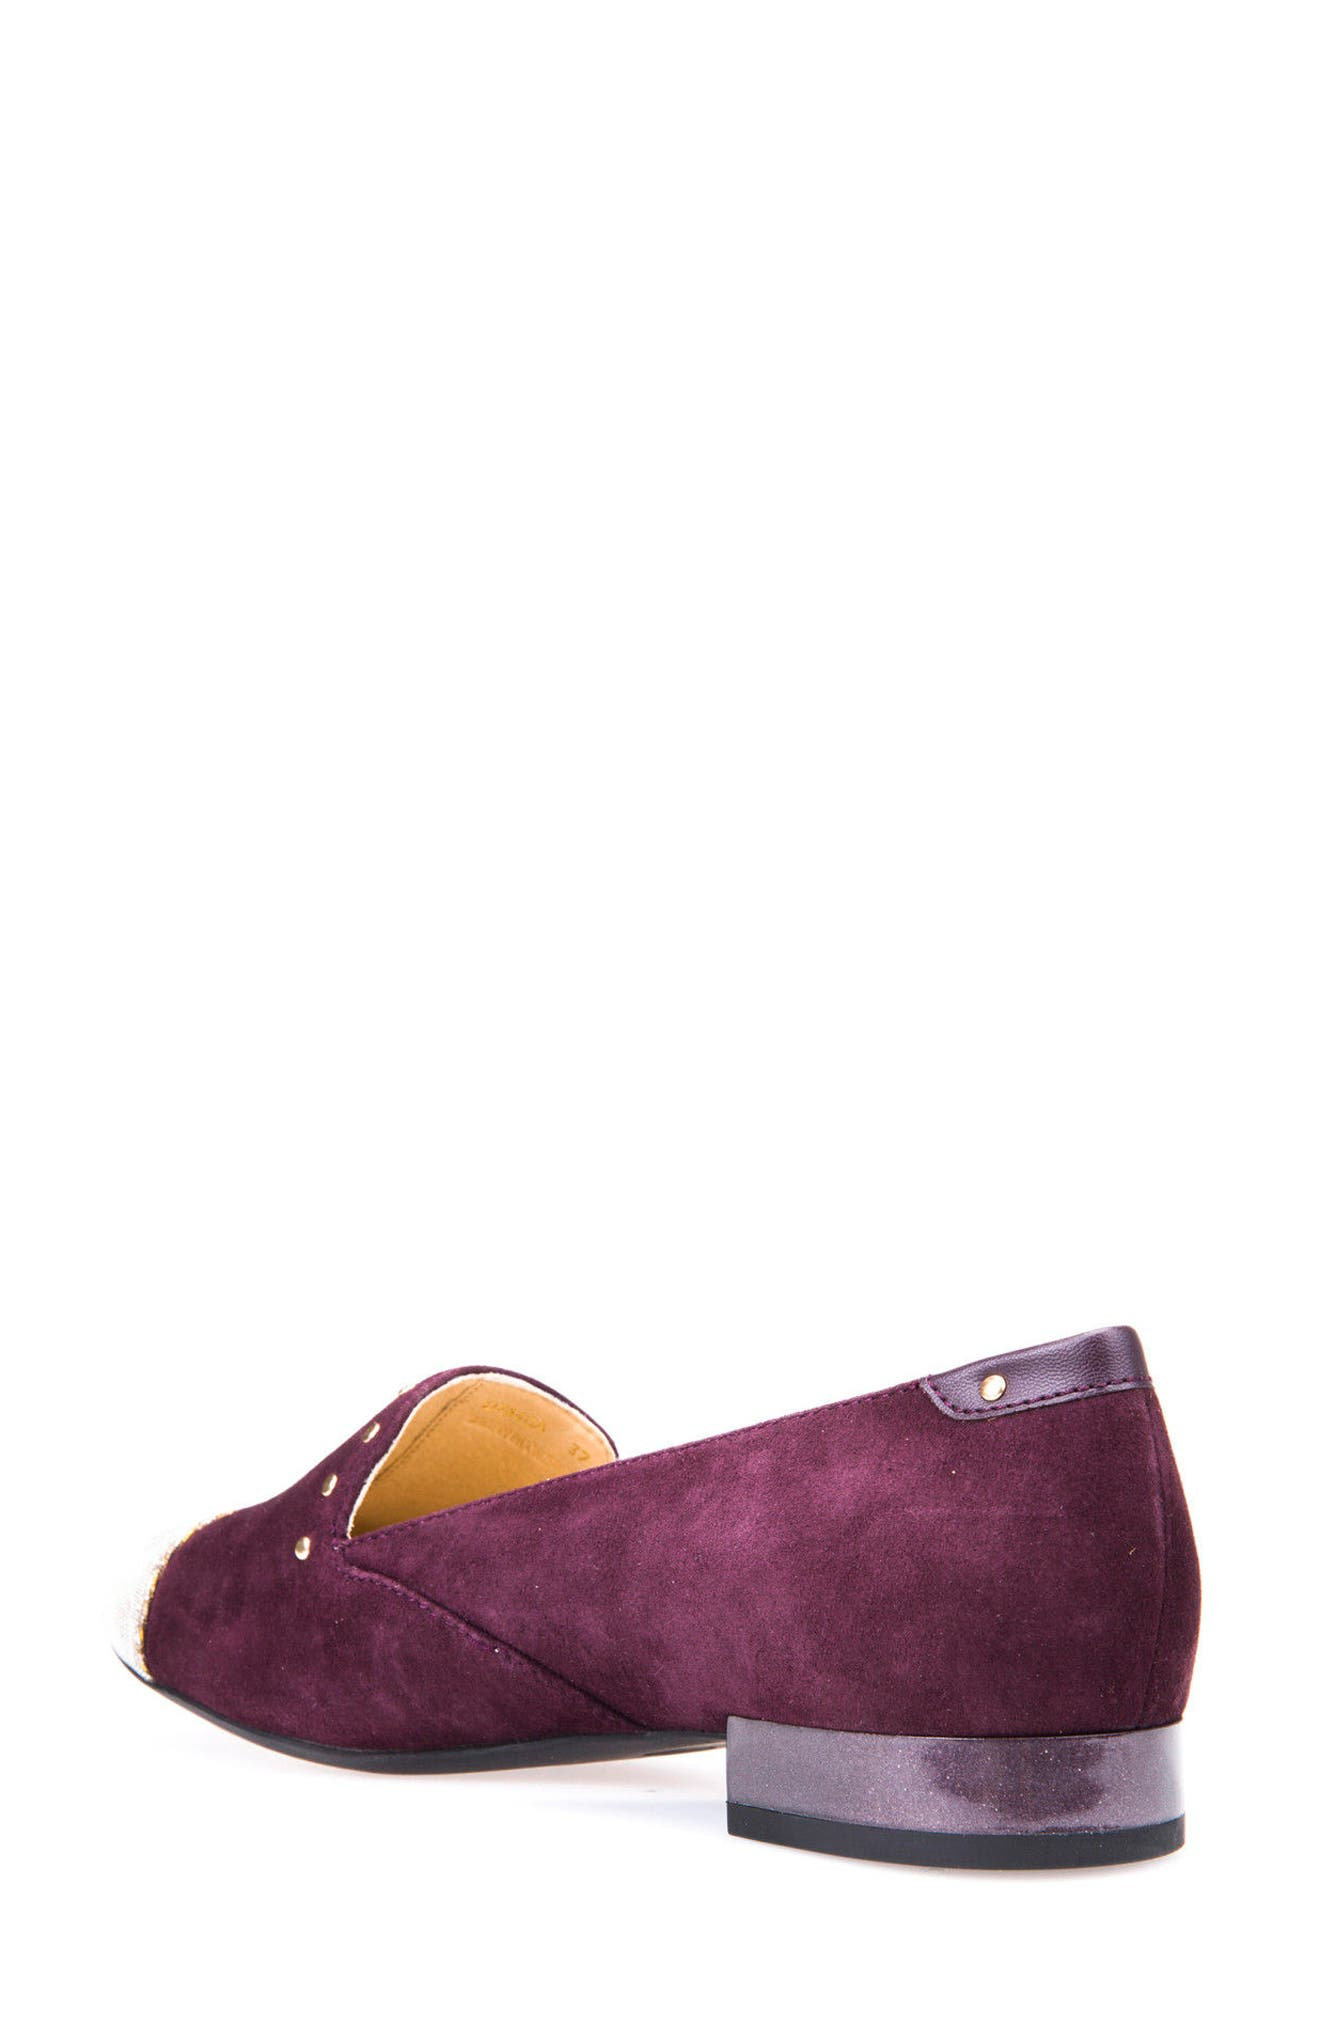 Wistrey Cap Toe Loafer,                             Alternate thumbnail 2, color,                             Light Prune Suede